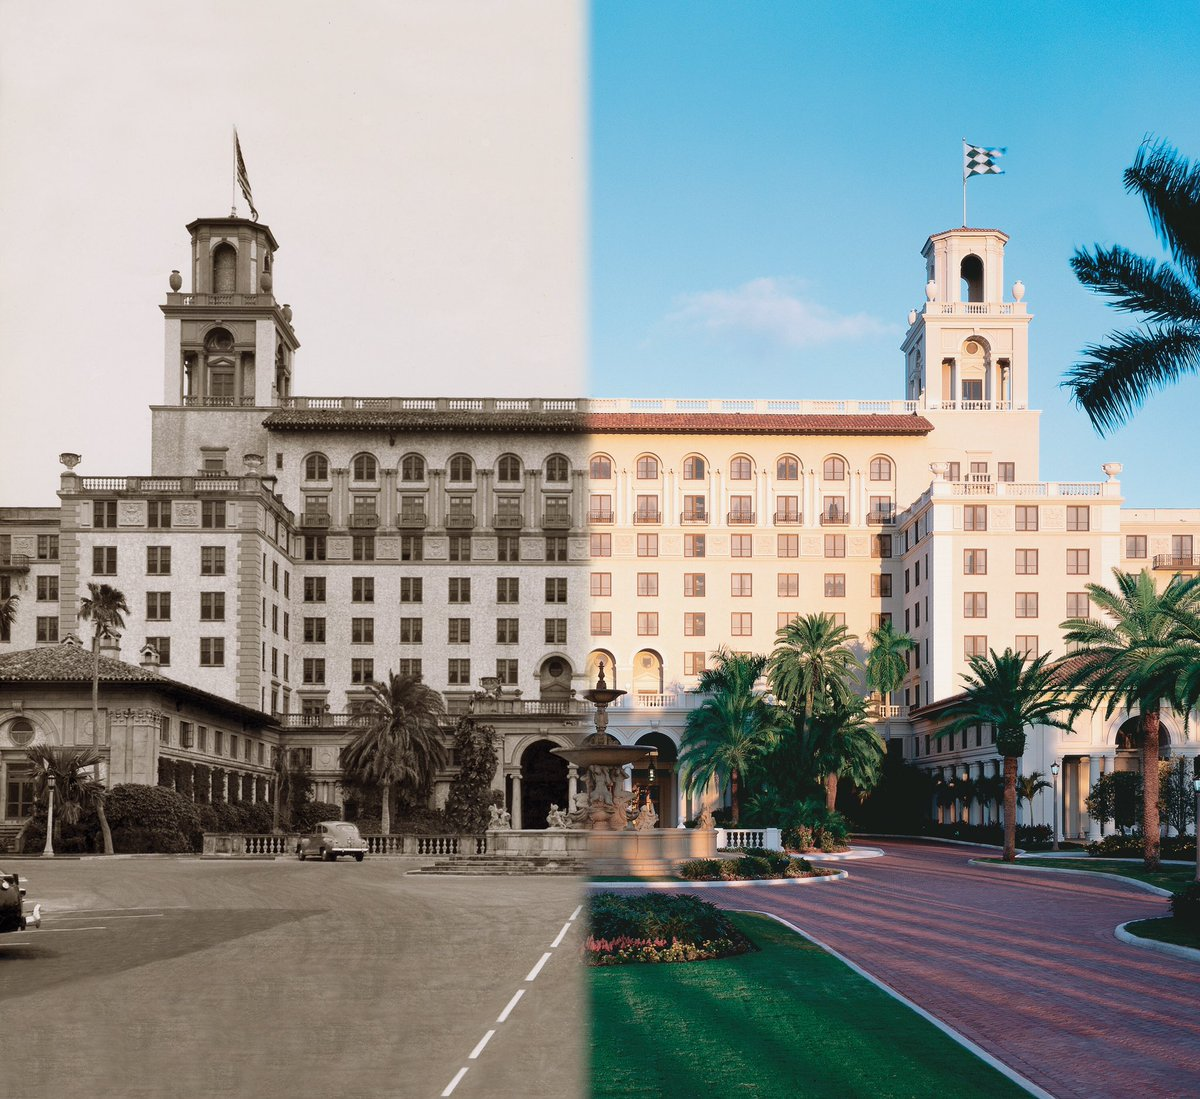 Join us as we wish @TheBreakers a Happy Birthday! 🎈 Founded by Henry M. Flagler, the resort first opened its doors on January 16, 1896. Today we celebrate 125 years - a testament to Flagler's vision, the unwavering commitment of our family ownership and ... https://t.co/7pSoJTxXZn